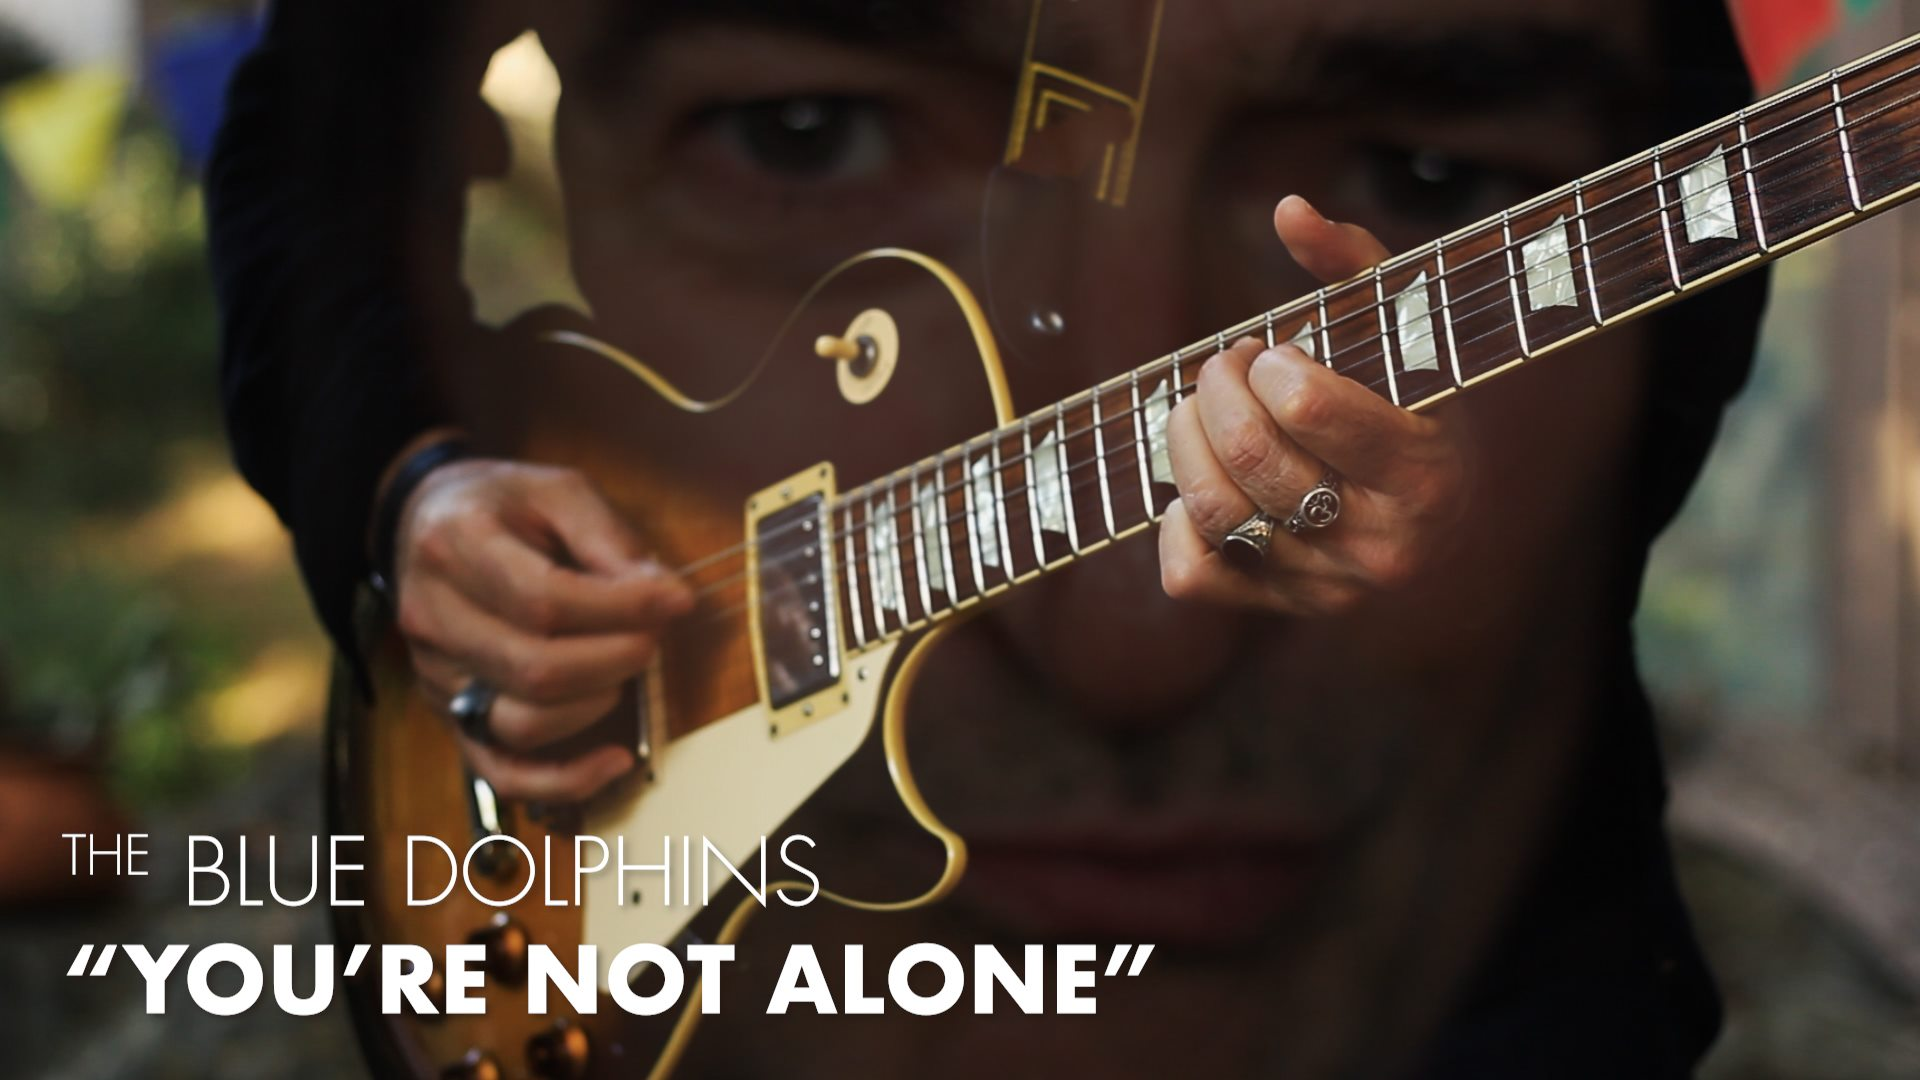 The Blue Dolphins Youre Not Alone thumbnail